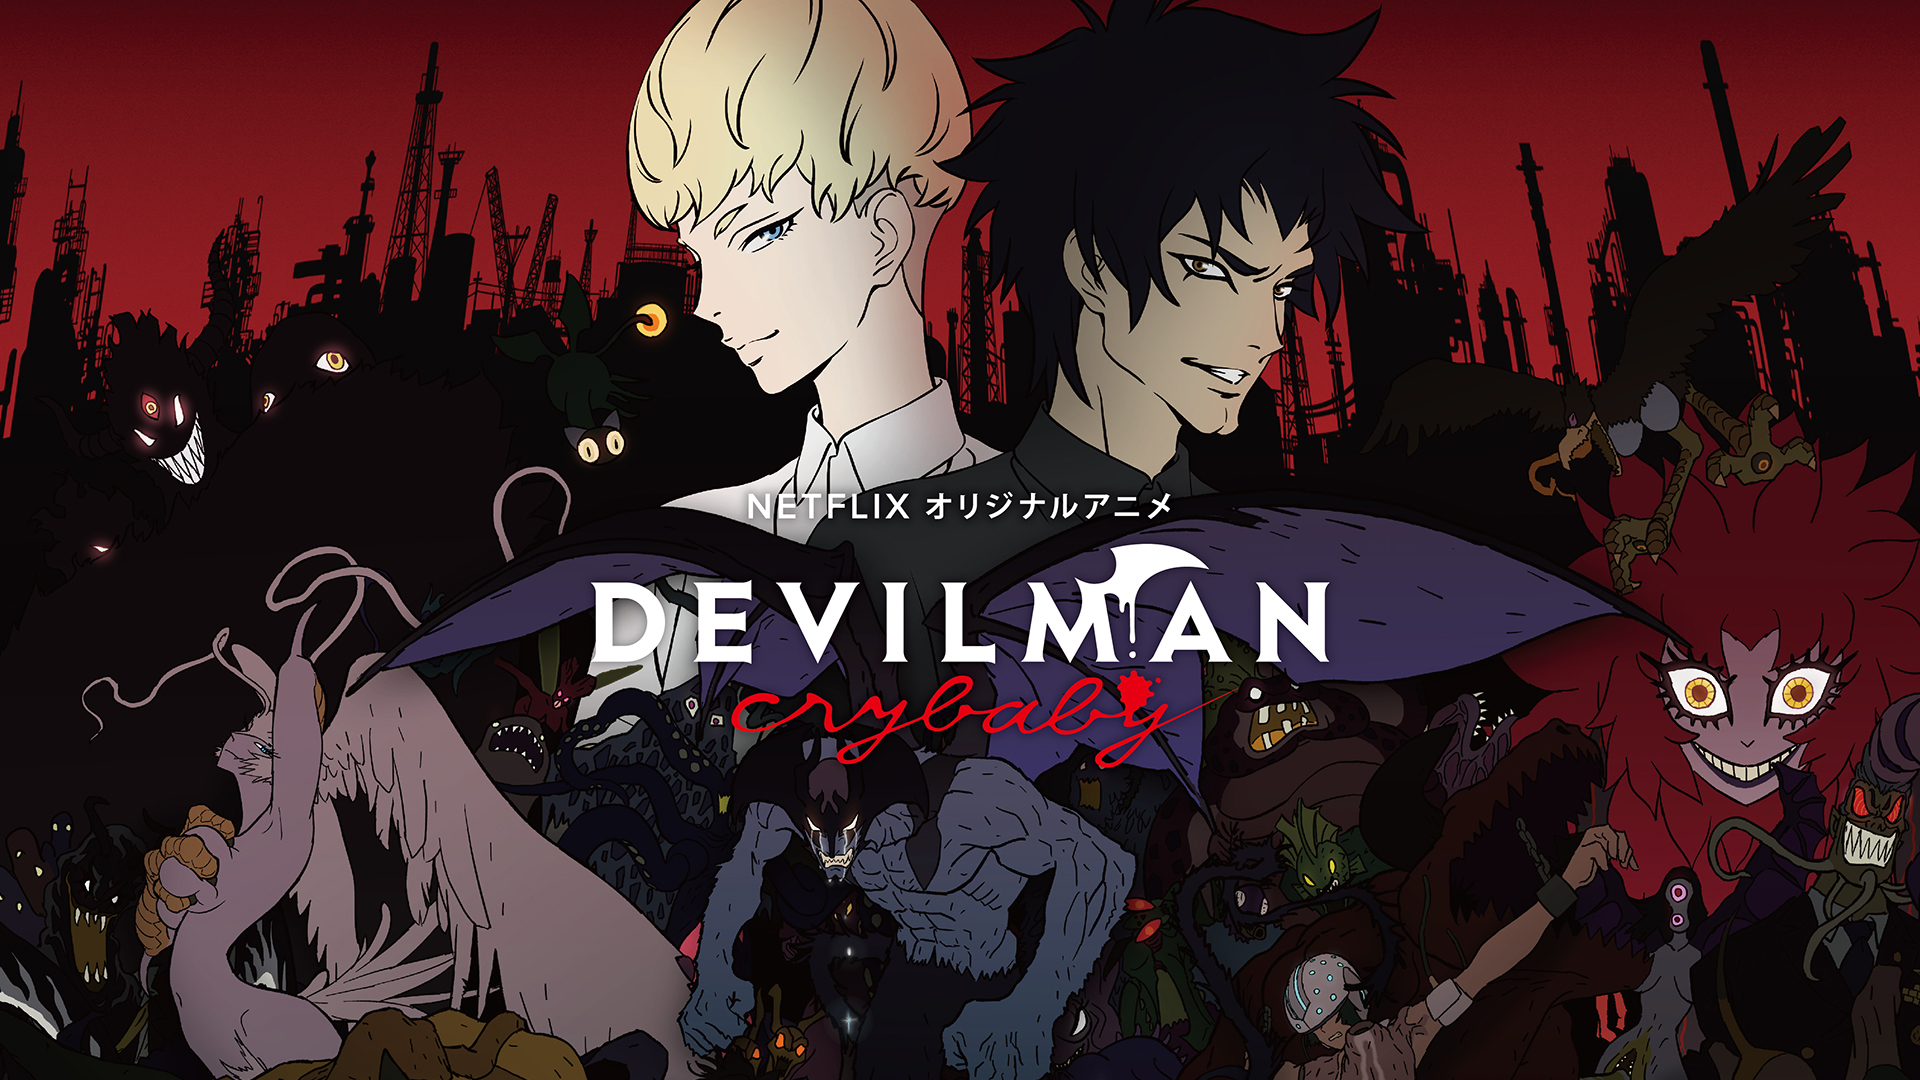 DevilmanCrybaby_group.jpg?w=1920